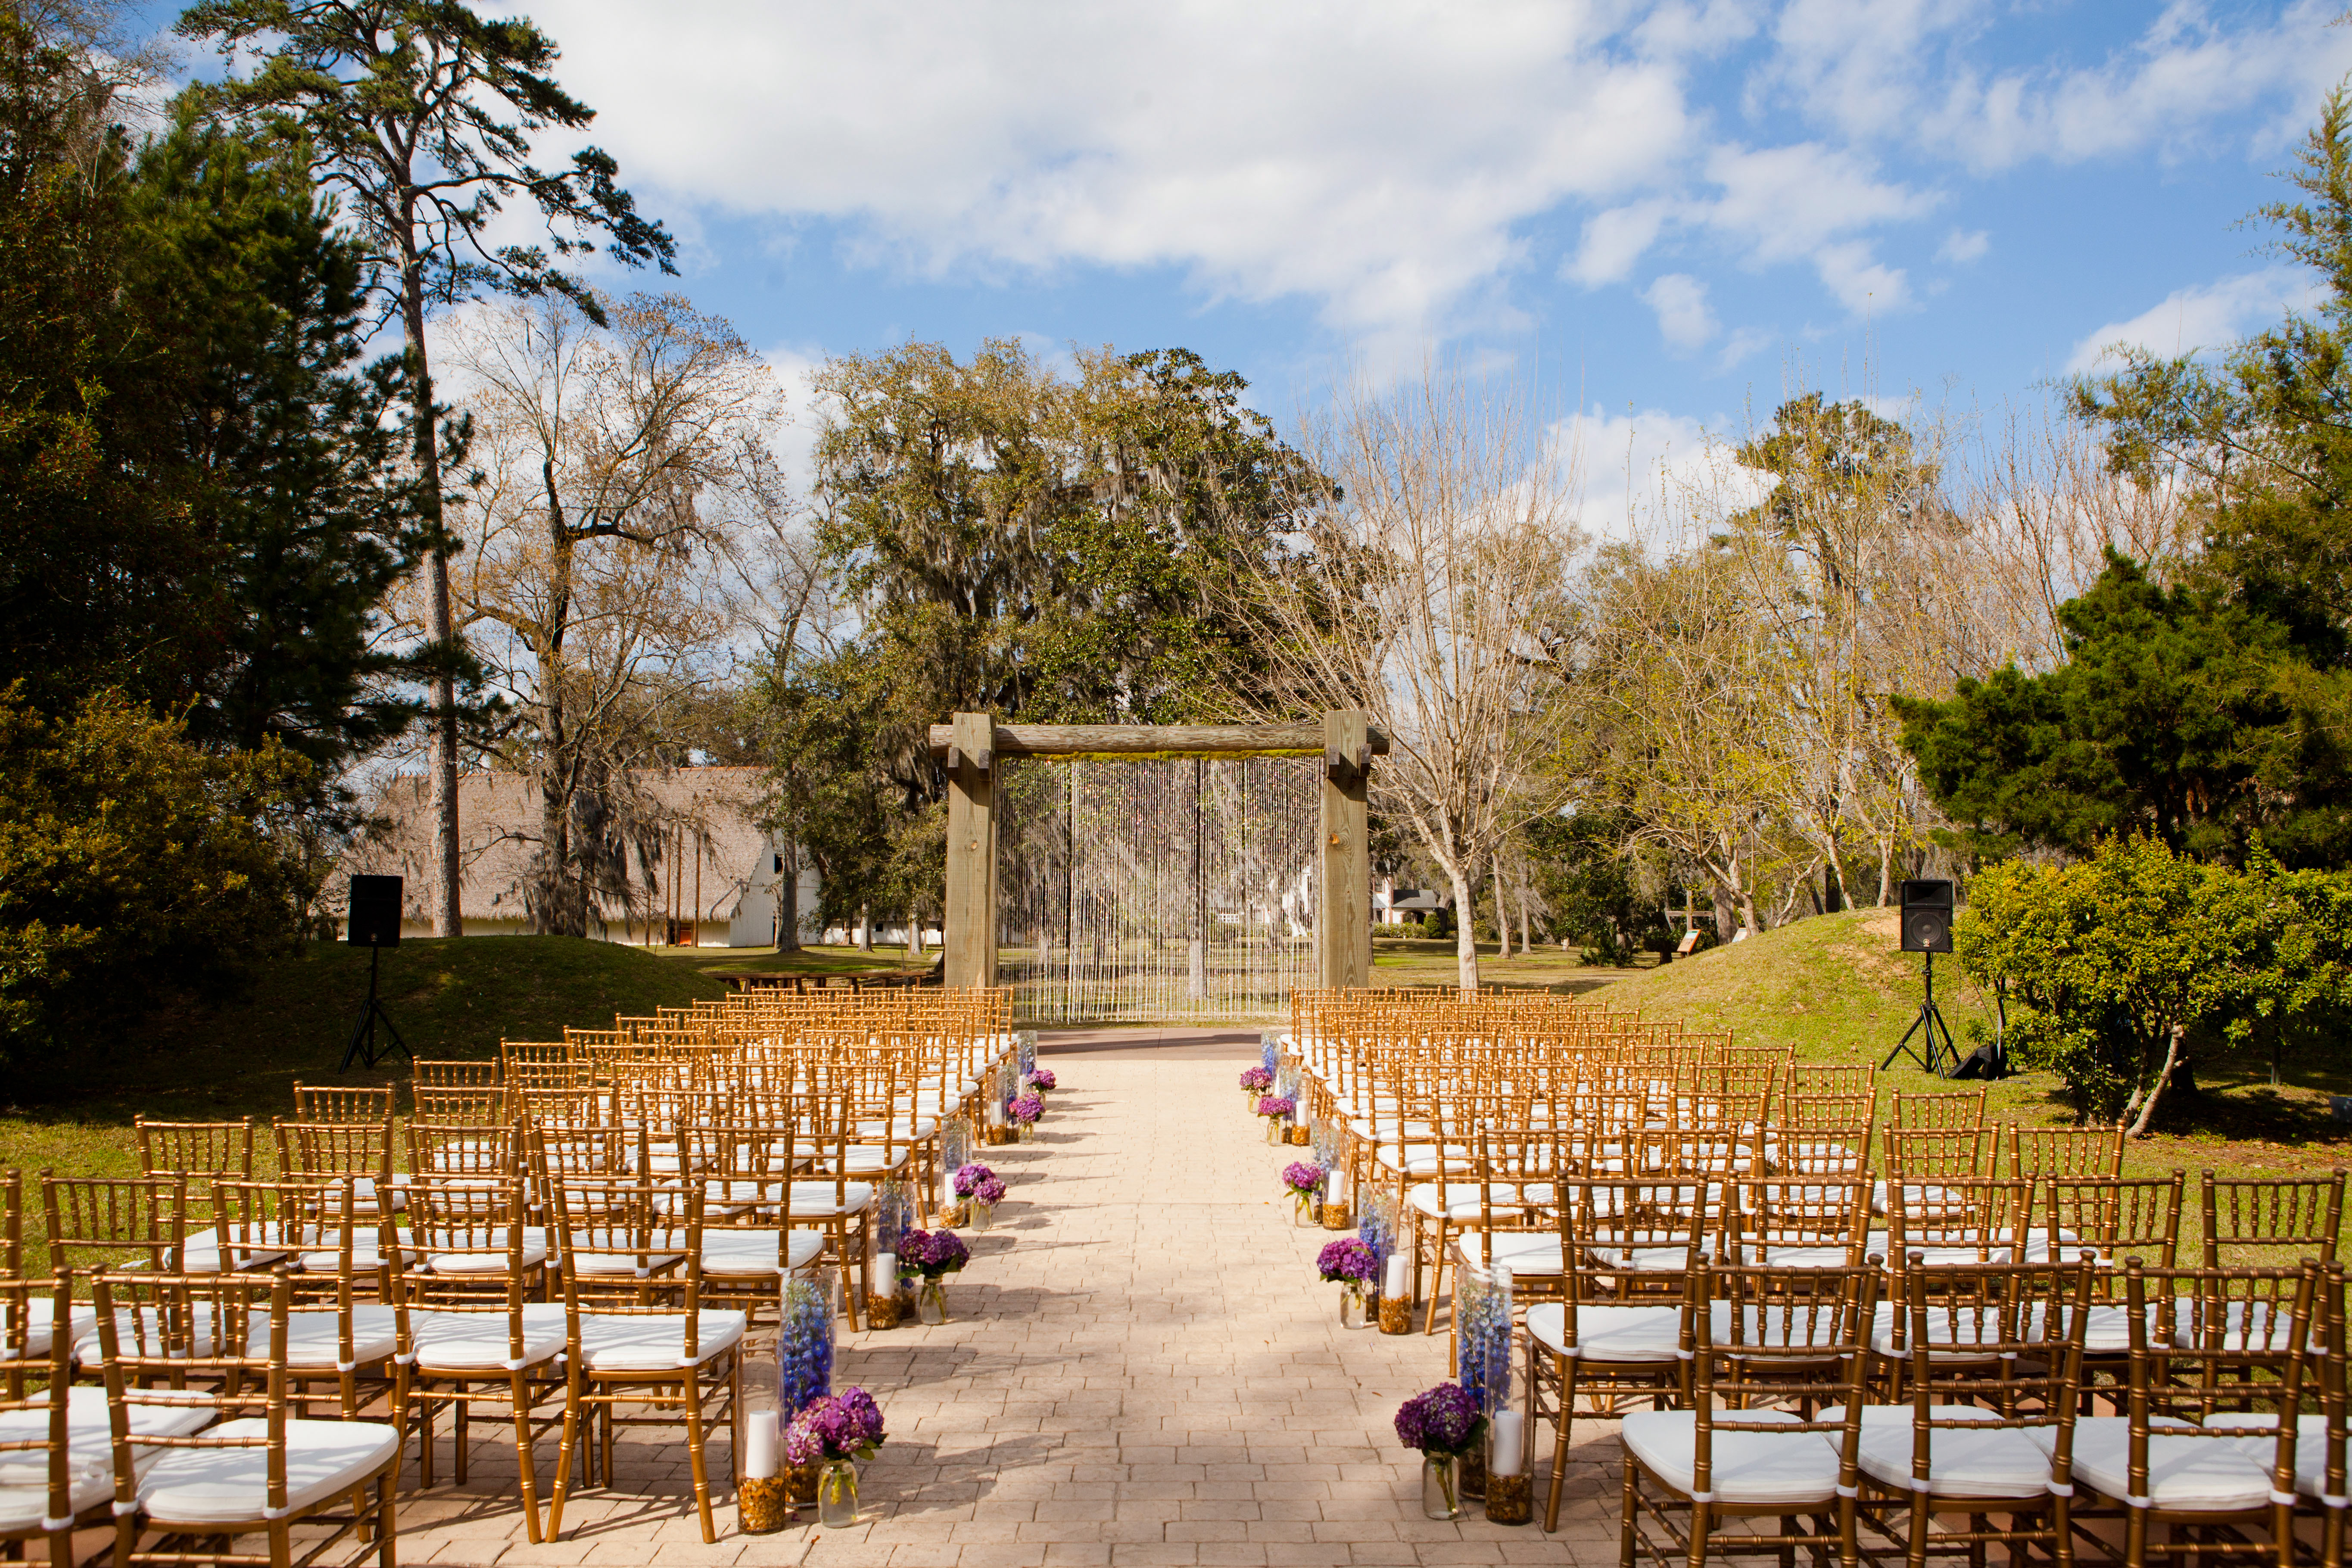 Tallahassee Wedding Venues: Florida is Not Only Miami! | The Miami ...